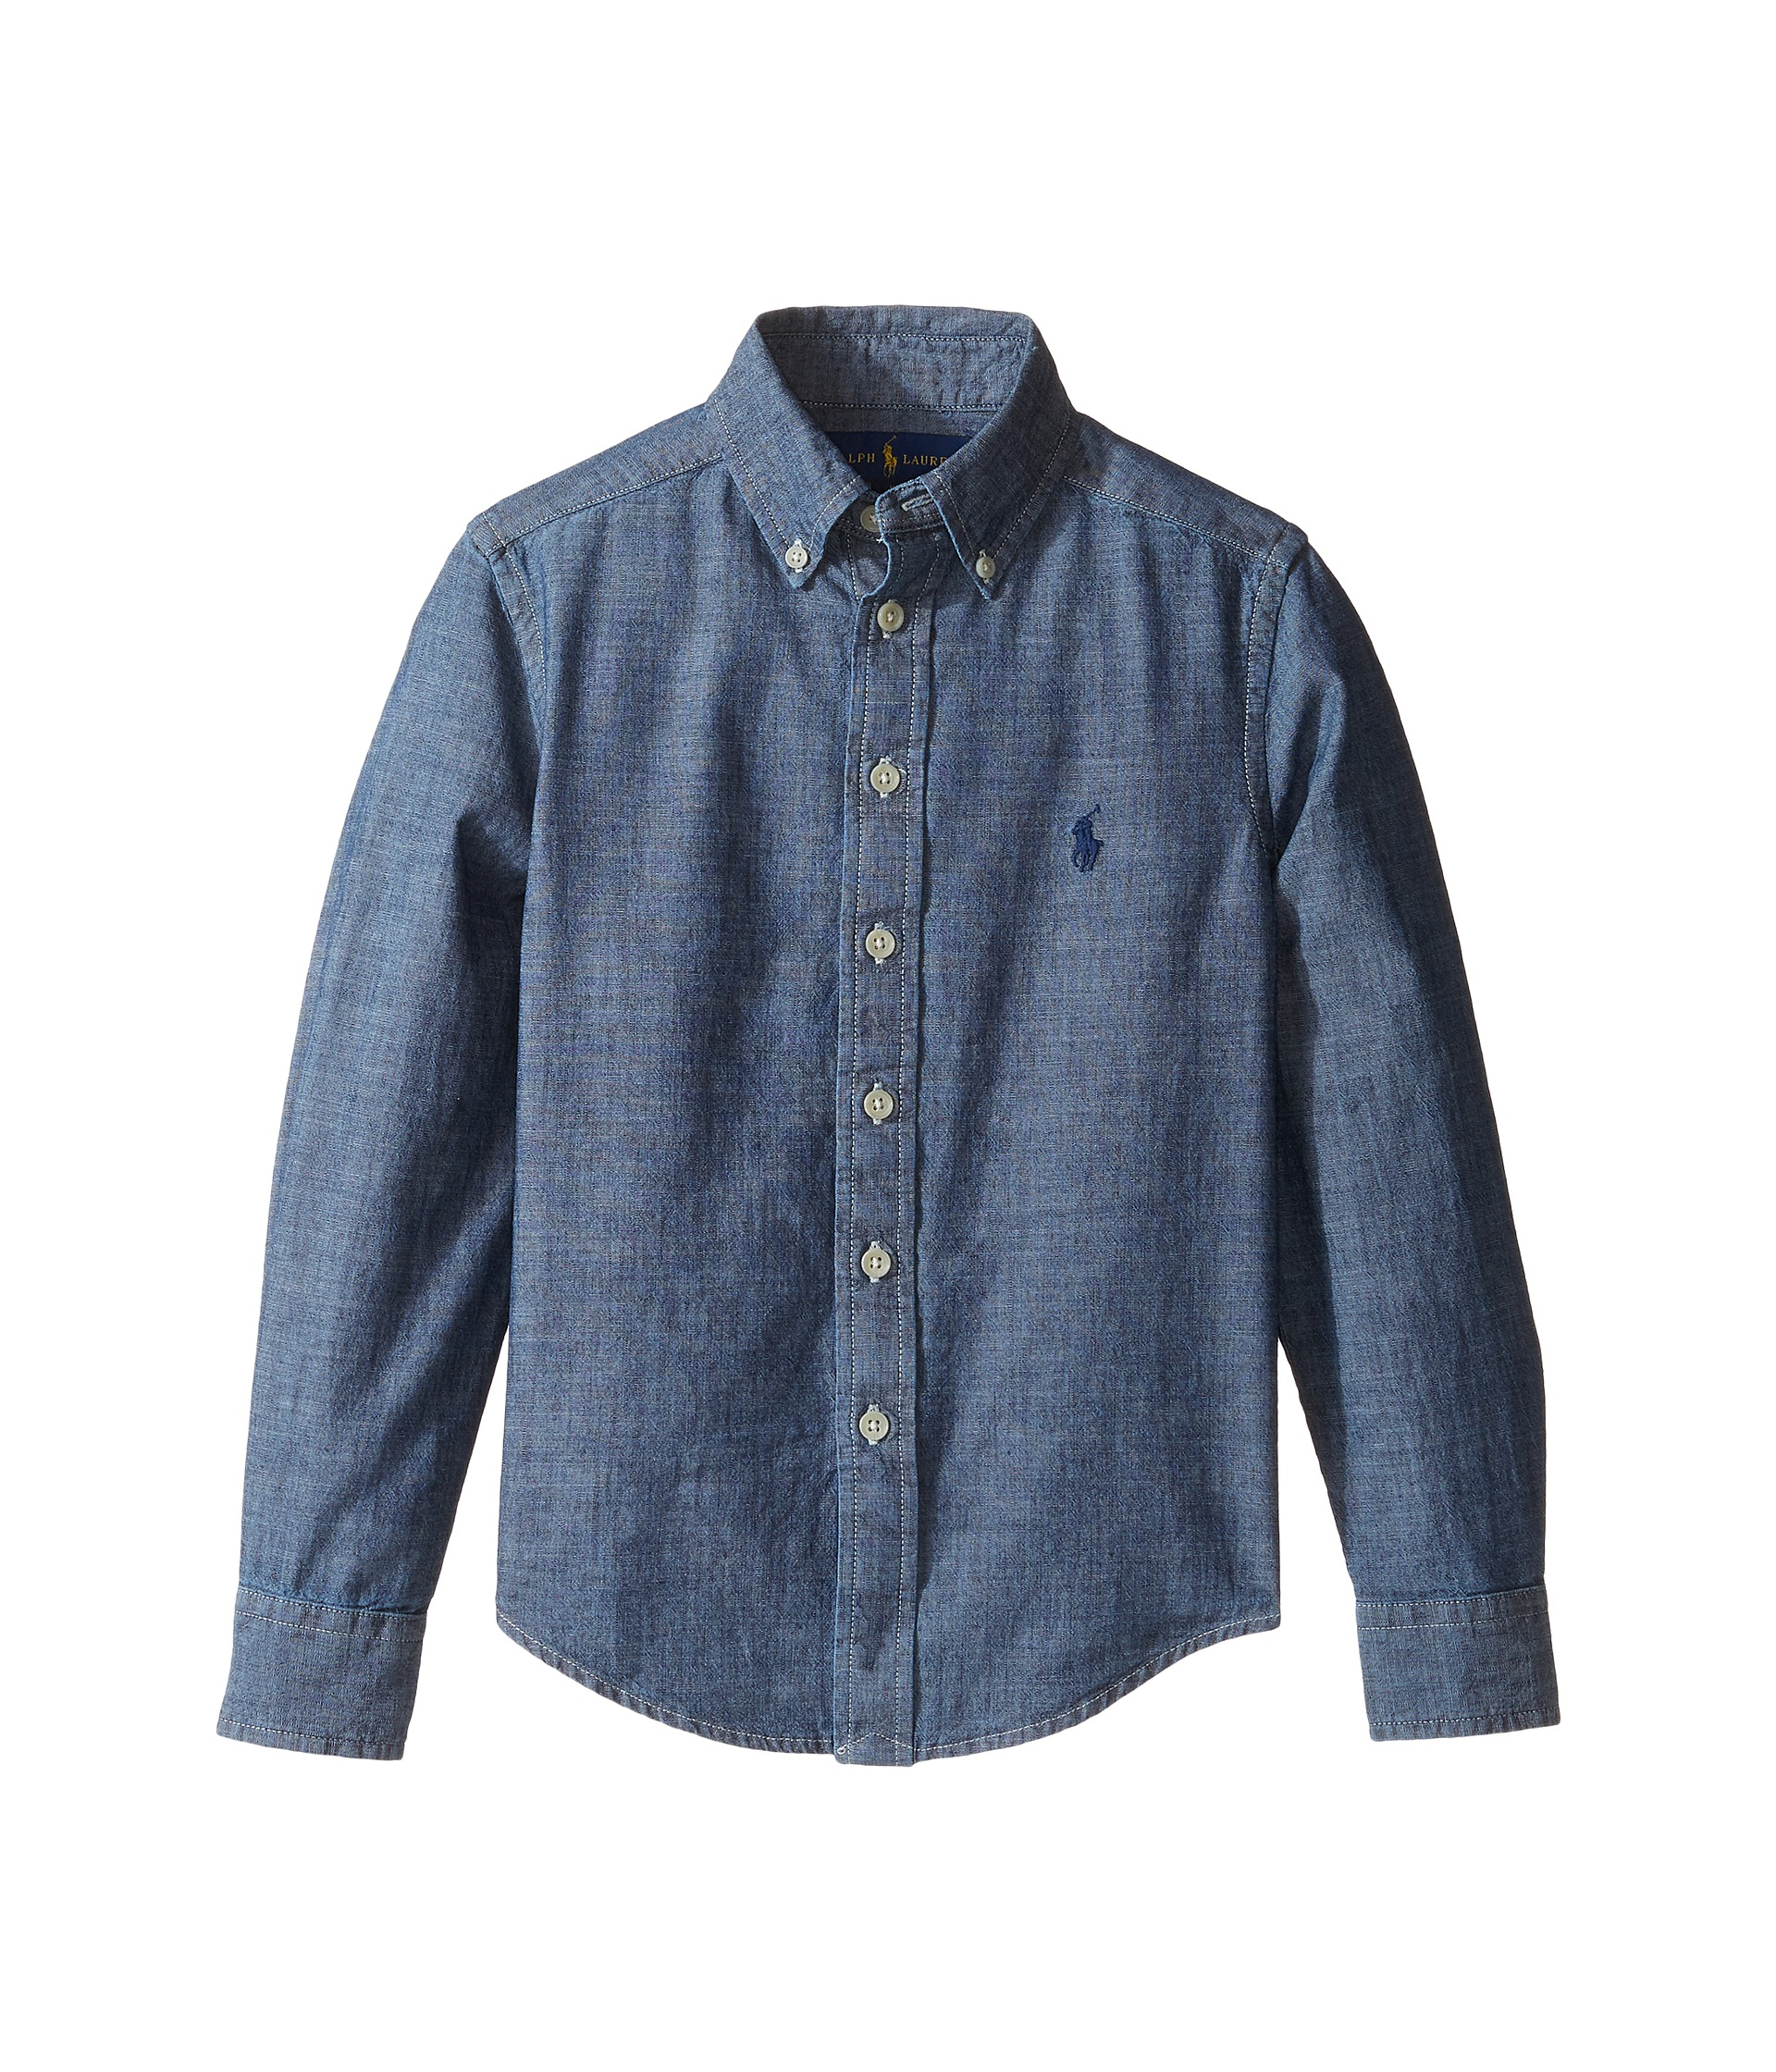 Shop the Boys' Chambray Shirt at private-dev.tk and see the entire selection of Boys' Shirts. Free Shipping Available.